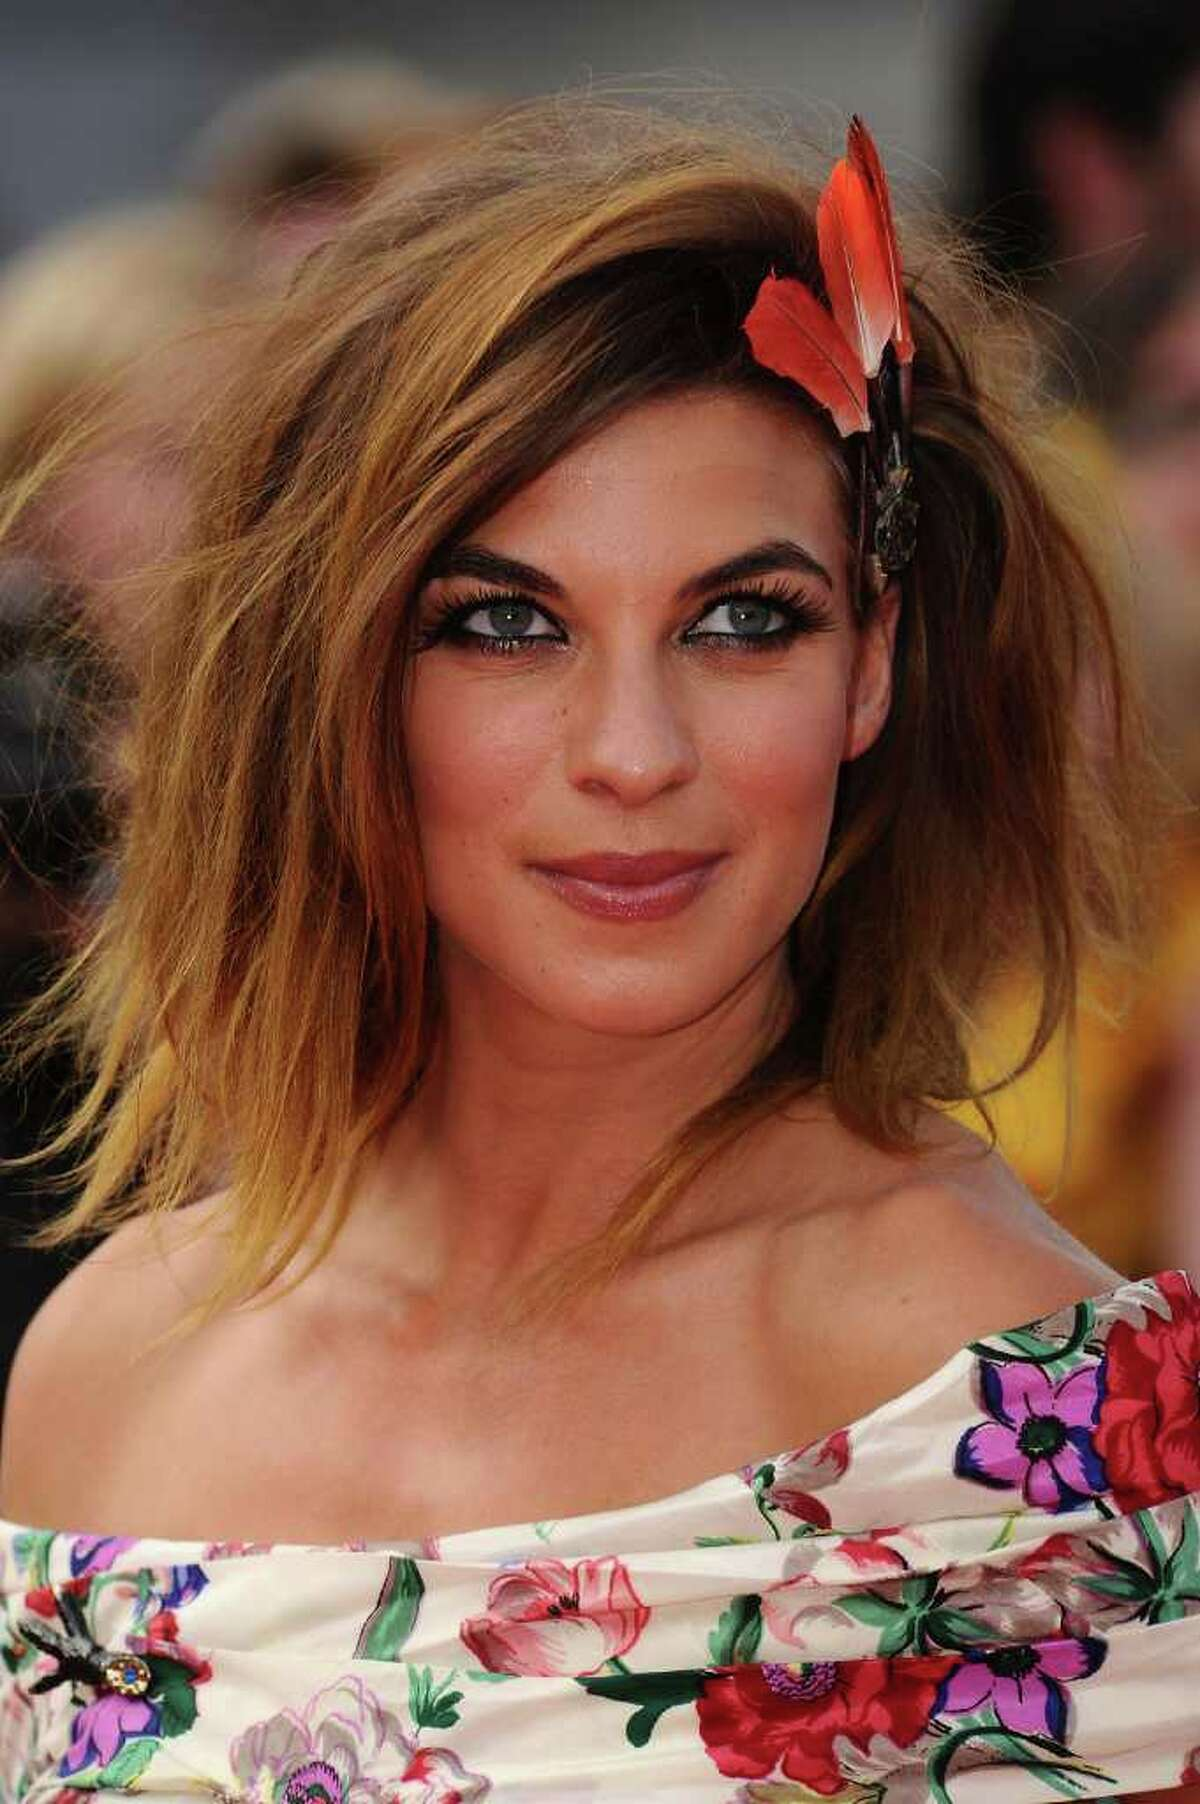 LONDON, ENGLAND - JULY 07: Actress Natalia Tena attends the World Premiere of Harry Potter and The Deathly Hallows - Part 2 at Trafalgar Square on July 7, 2011 in London, England. (Photo by Ian Gavan/Getty Images)